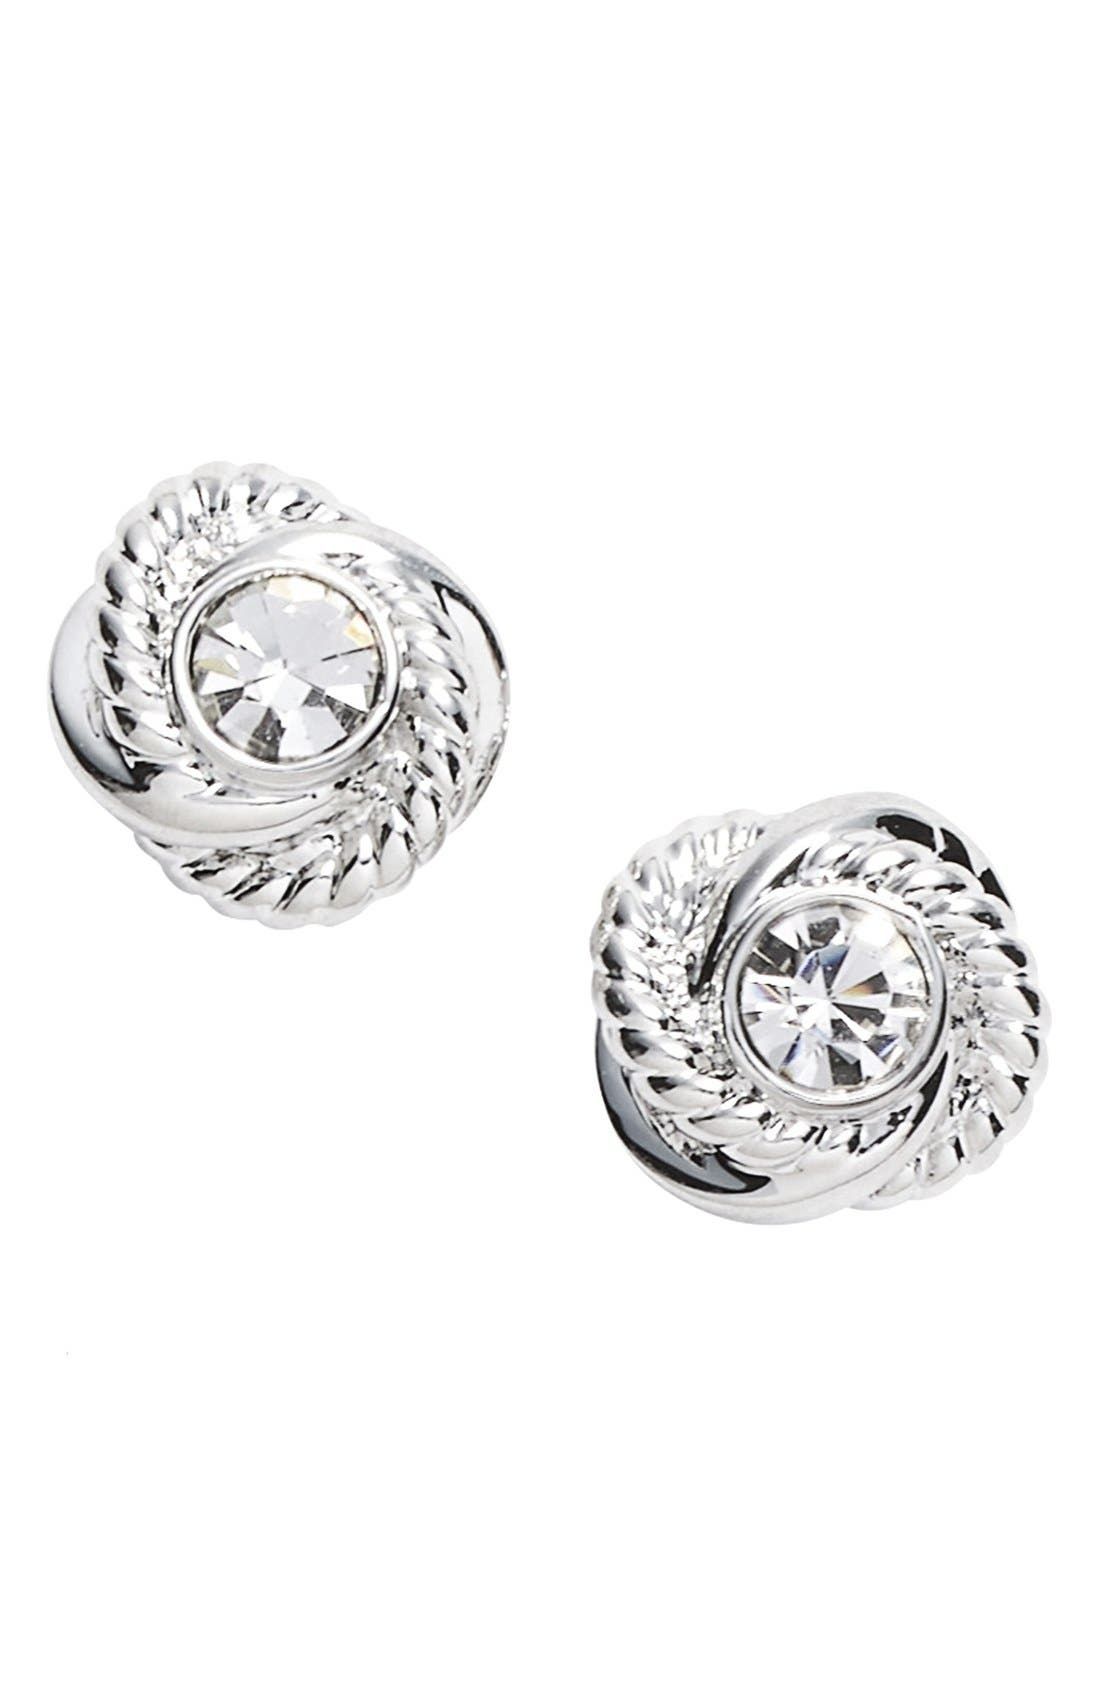 'infinity and beyond' knot earrings,                             Main thumbnail 1, color,                             Clear/ Silver